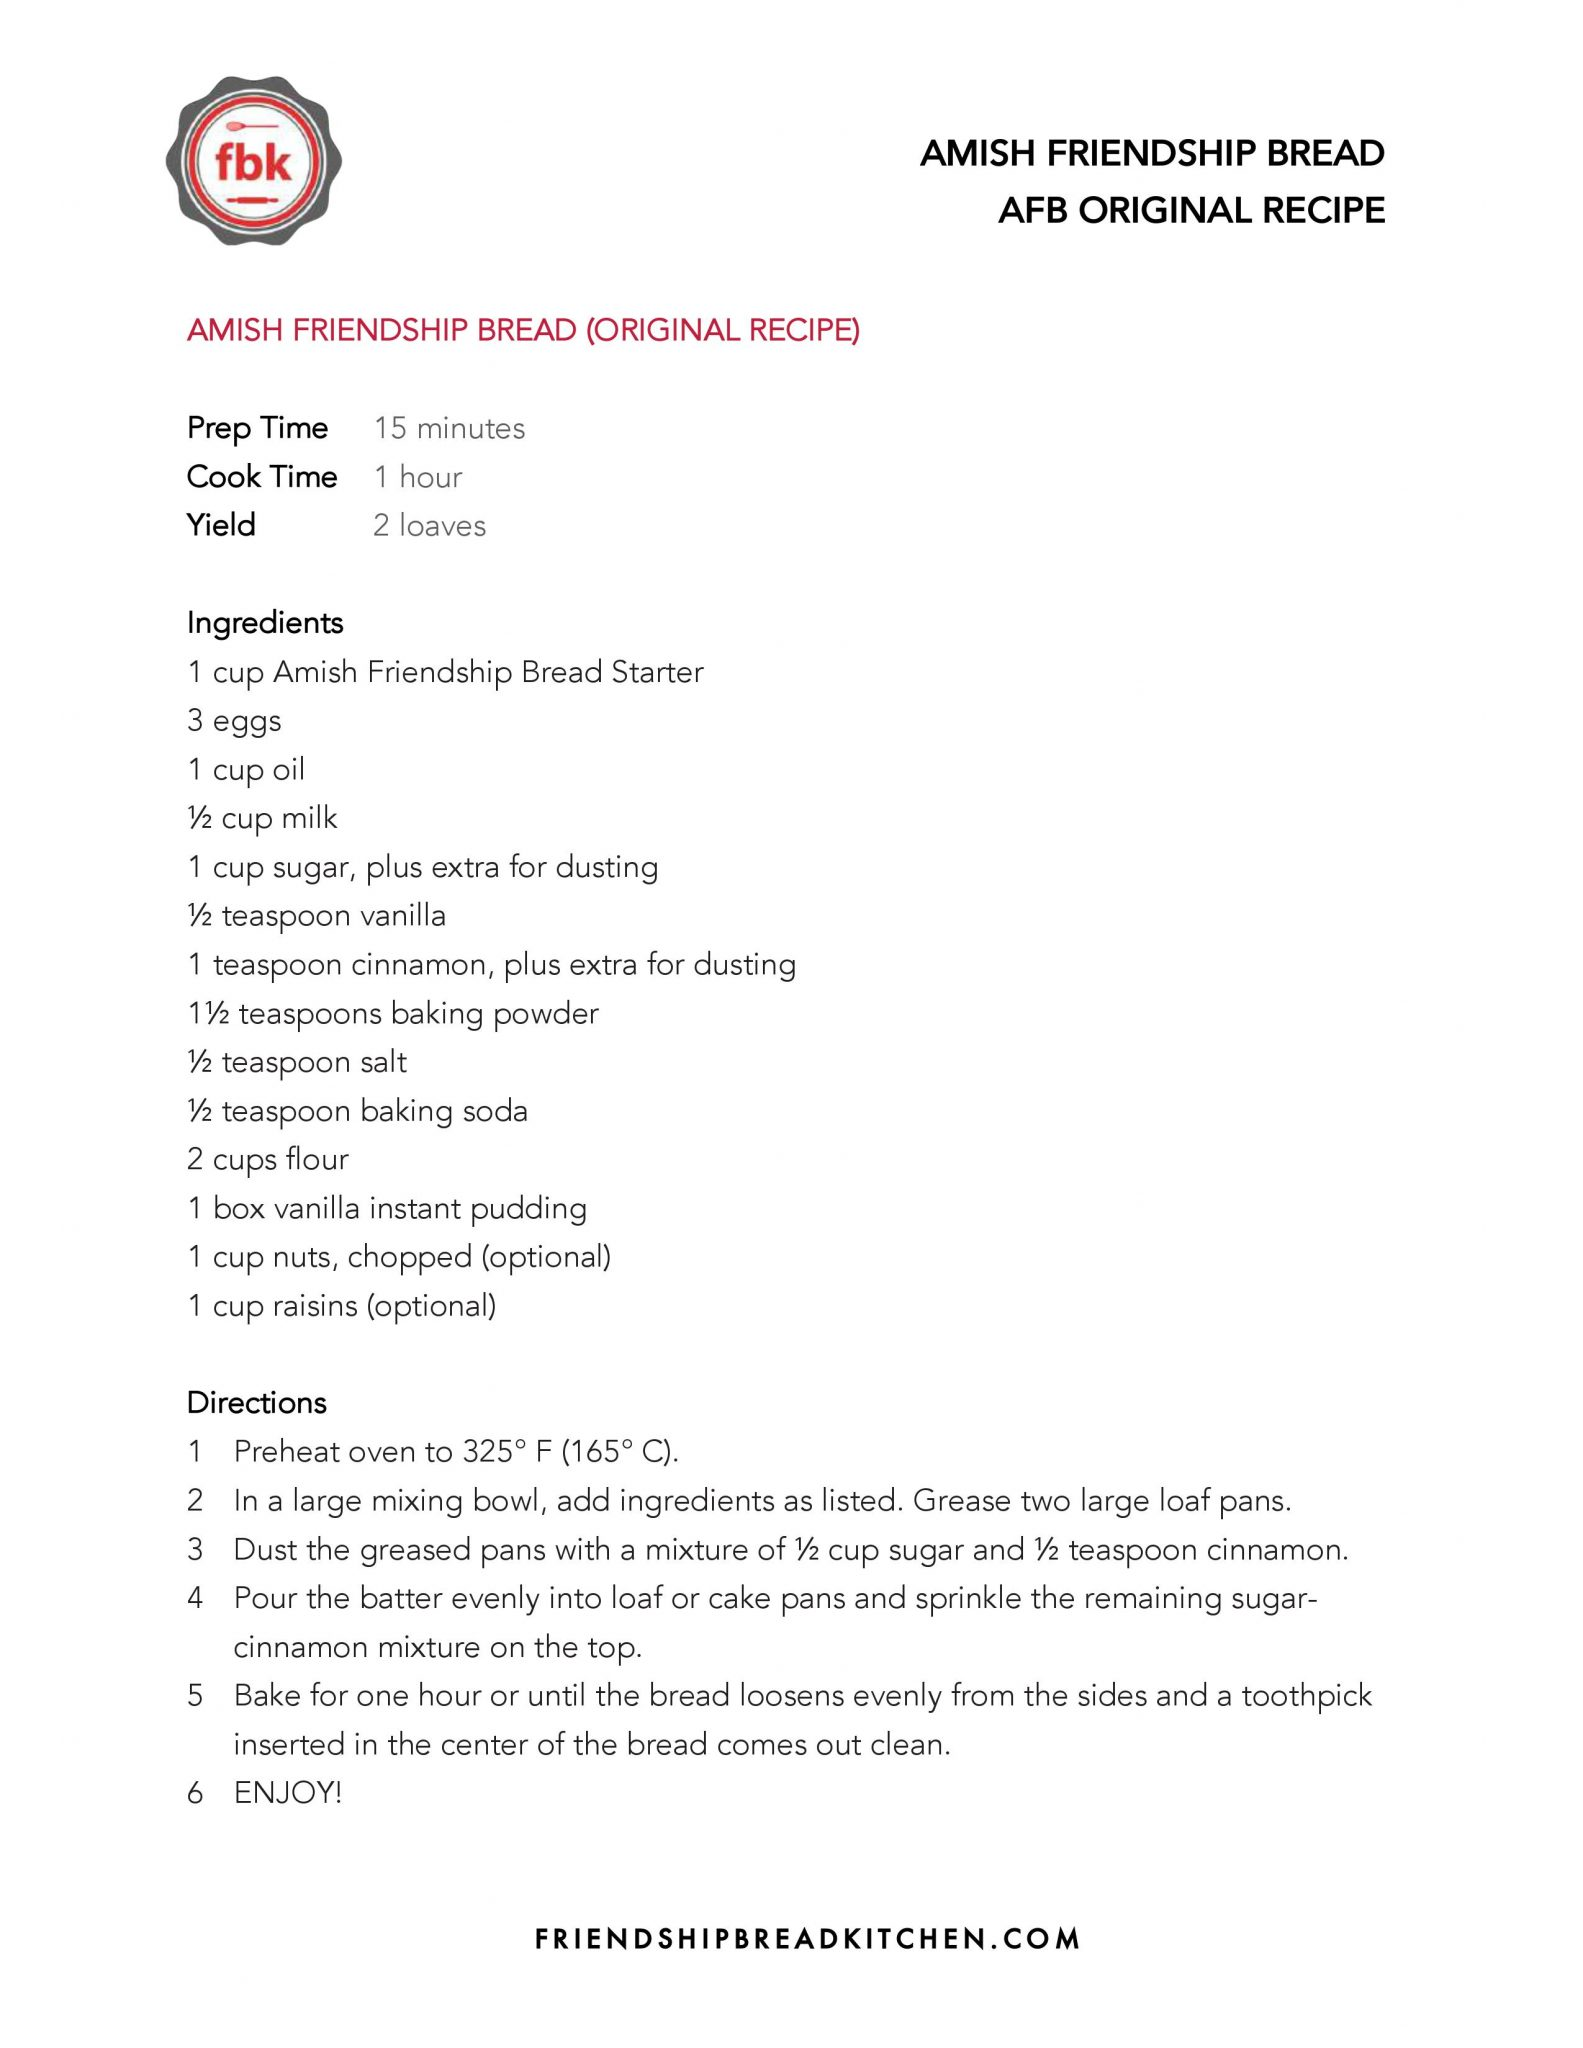 Amish Friendship Bread Planner And Recipe Guide